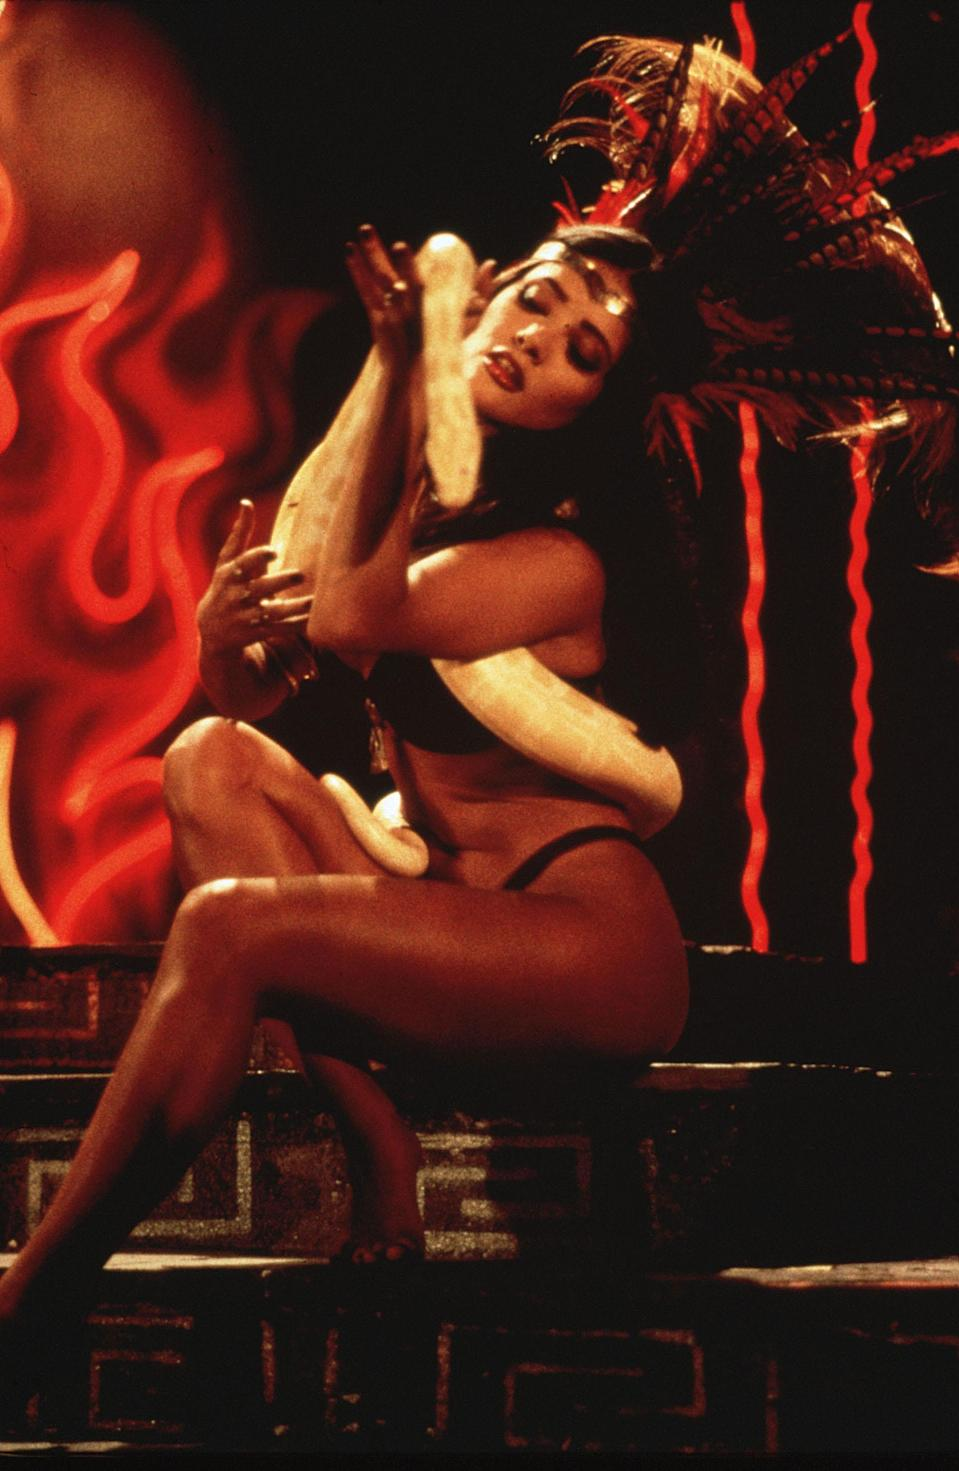 """<strong><em><h3>From Dusk Till Dawn </h3></em></strong><h3>(1996)<br></h3><br>We'll sell you on the sex appeal of this vampire film quickly. Salma Hayek plays a vampire goddess named Santanico Pandemonium who specialises in a """"snake dance,"""" and is but one vampire working in a bar straight out of <em>True Blood</em>.<span class=""""copyright"""">Joyce Podell/Los Hooligans/A Band Apart/Kobal/REX/Shutterstock</span>"""